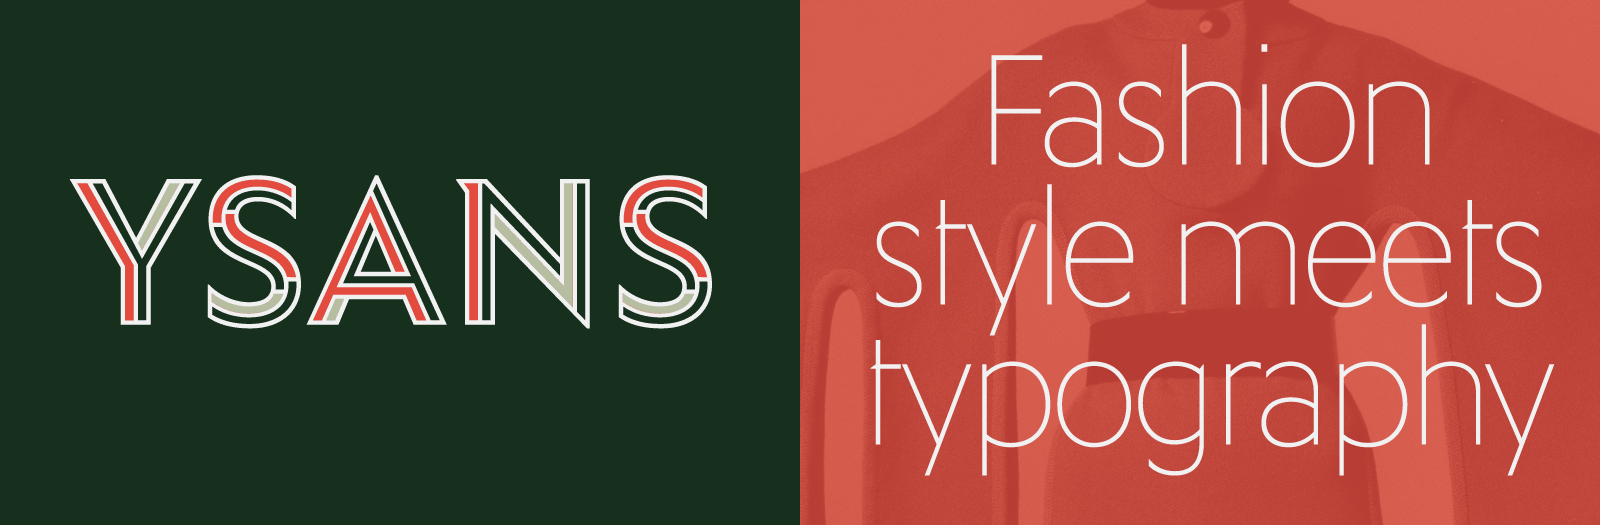 Ysans, fashion style meets typography by Jean Francois Porchez